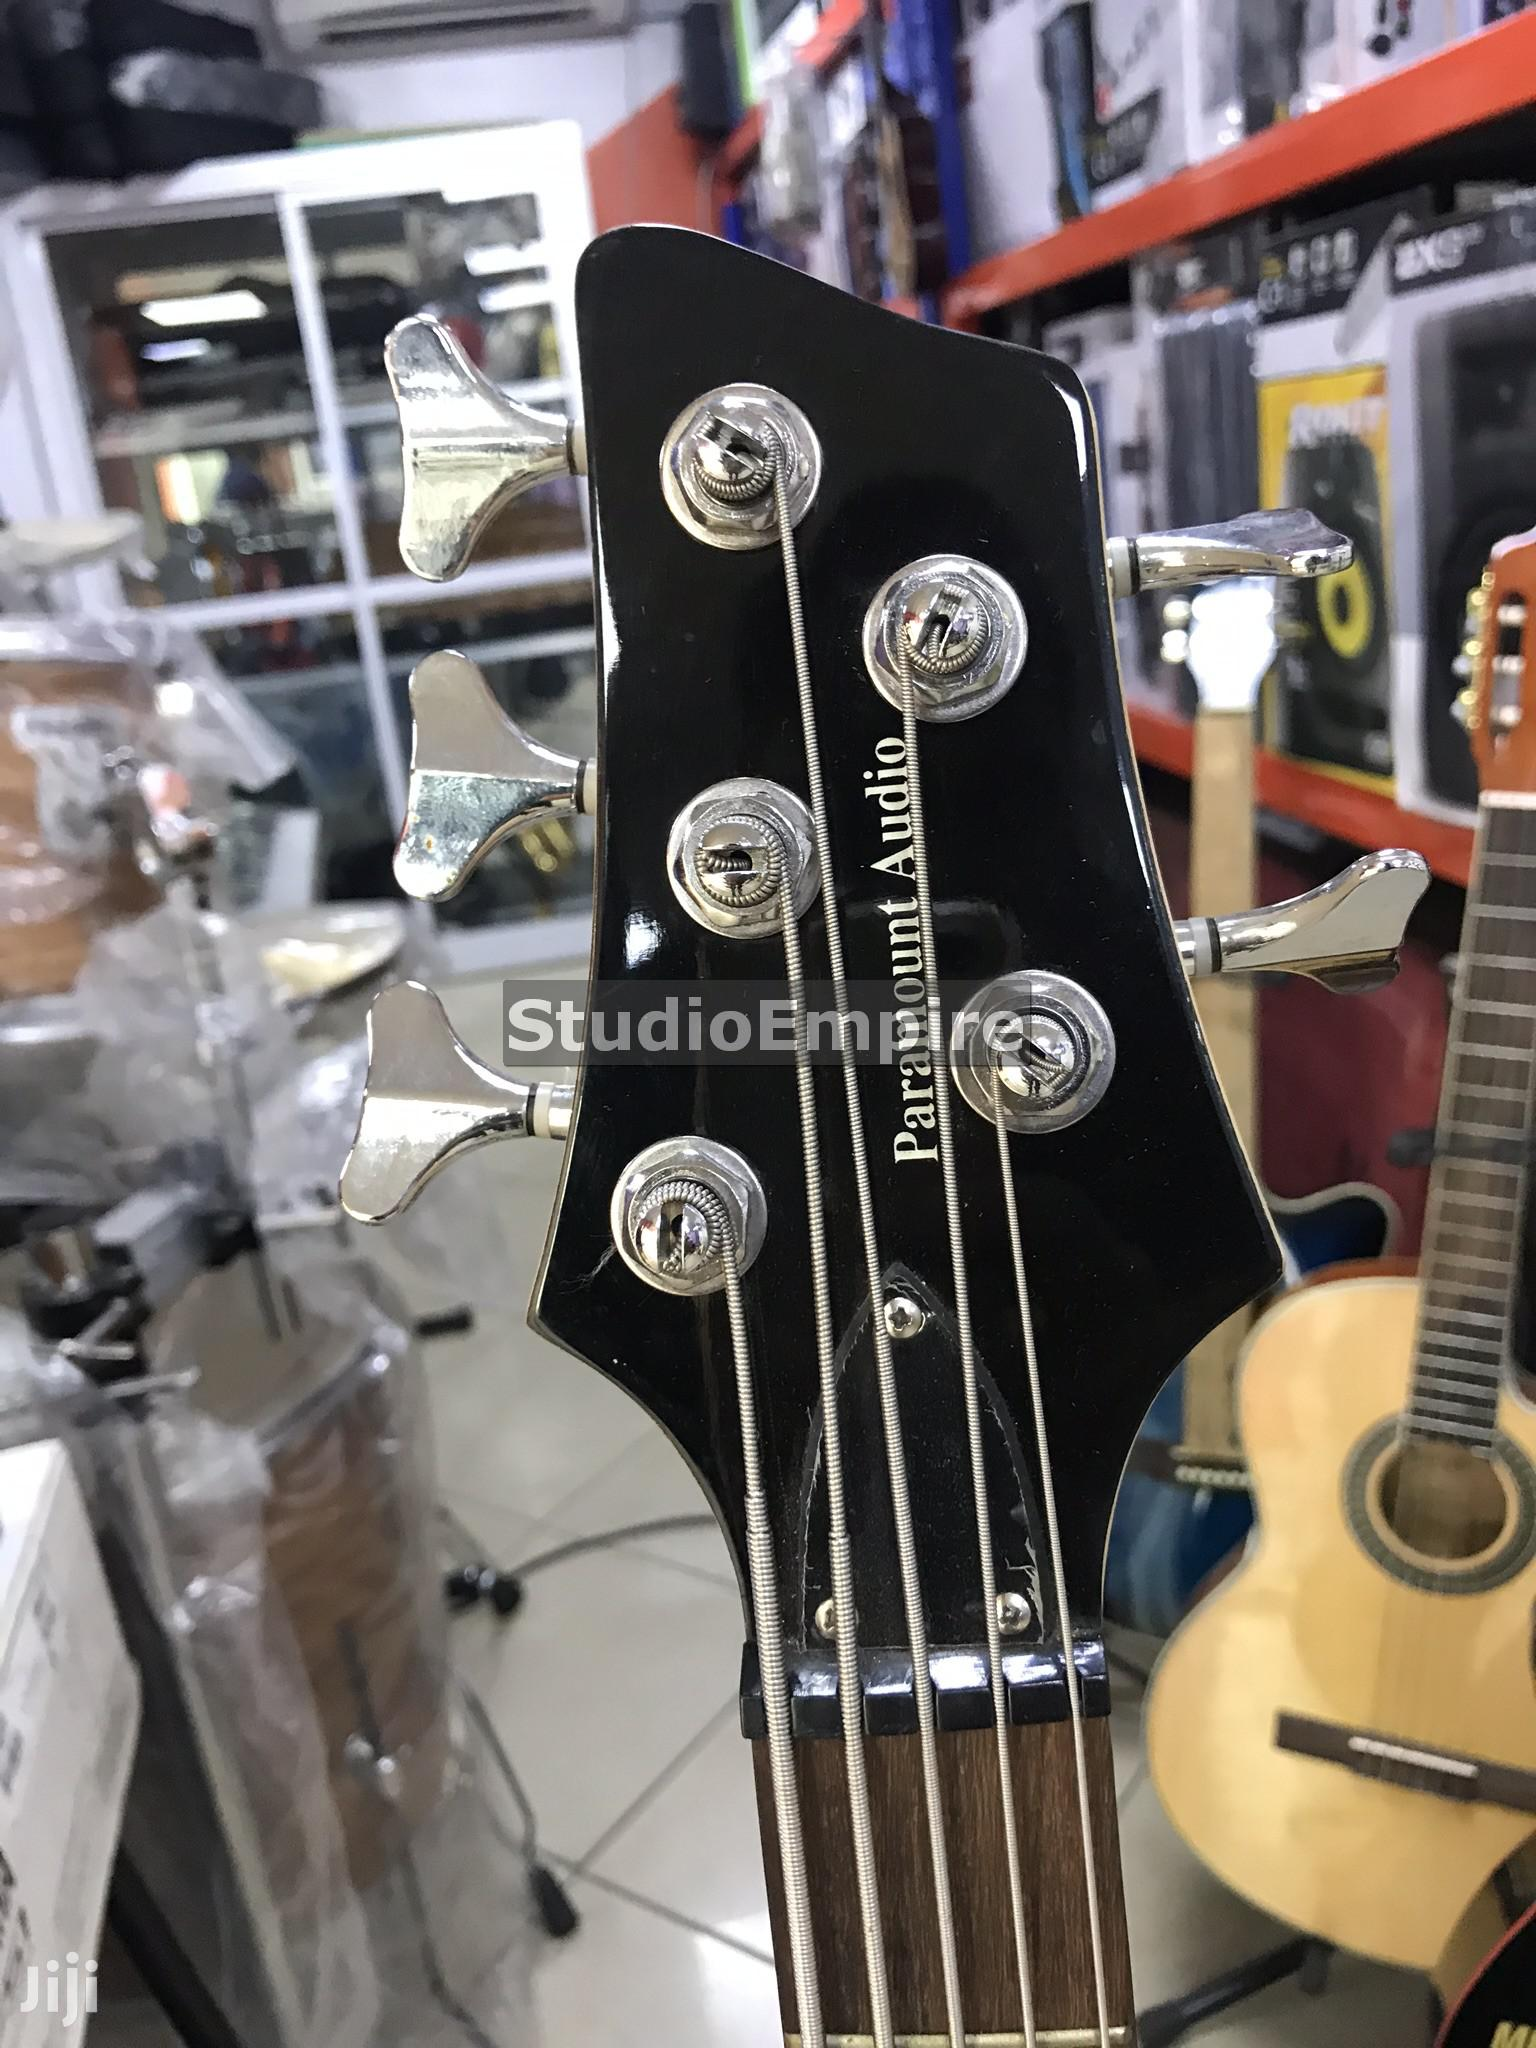 Paramount Professional 5-String Bass Guitar With Bag Belt - Redburst   Musical Instruments & Gear for sale in Lagos State, Nigeria